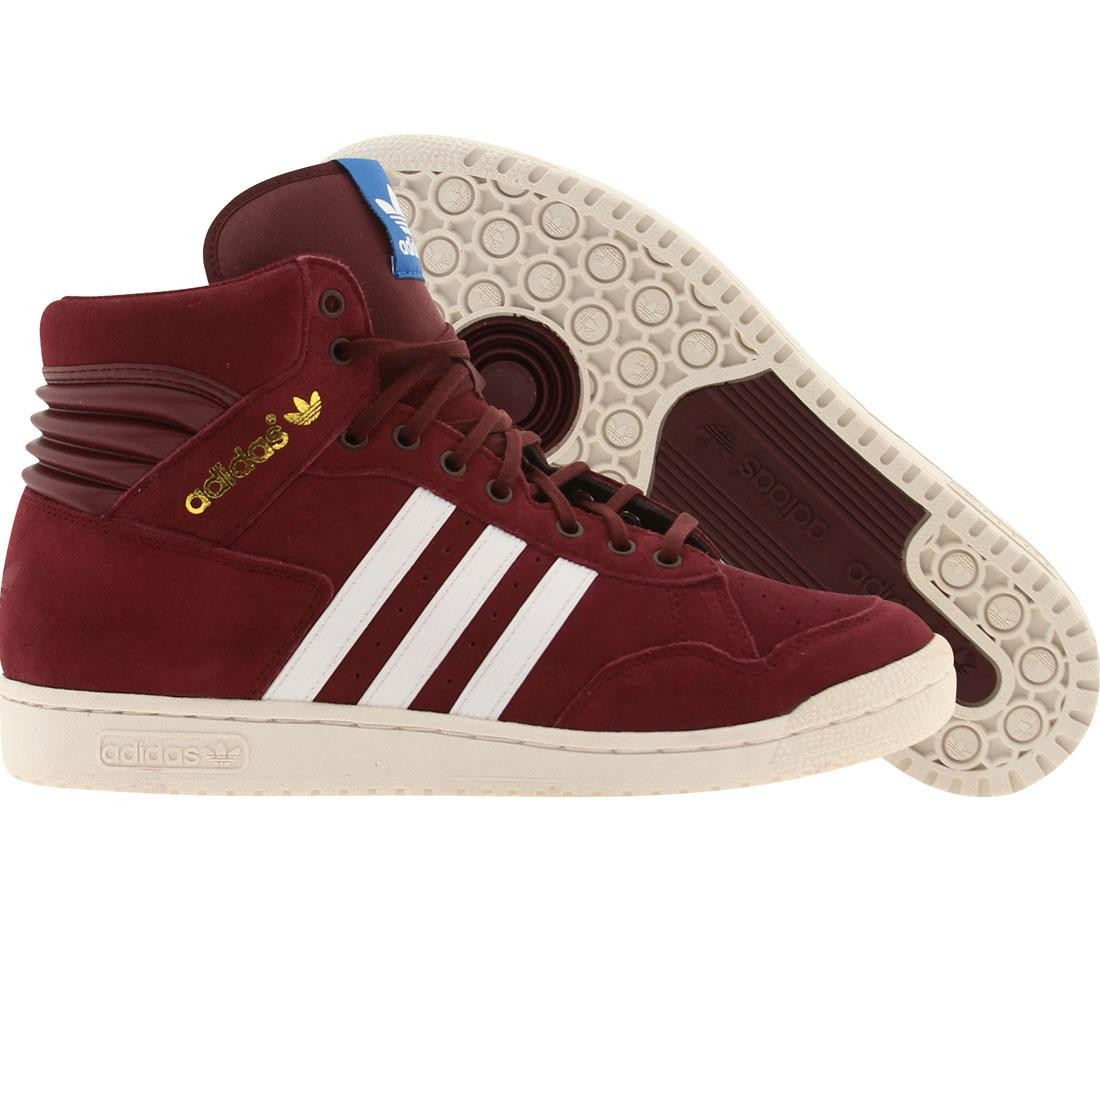 adidas hommes pro - - - conf 11eef5